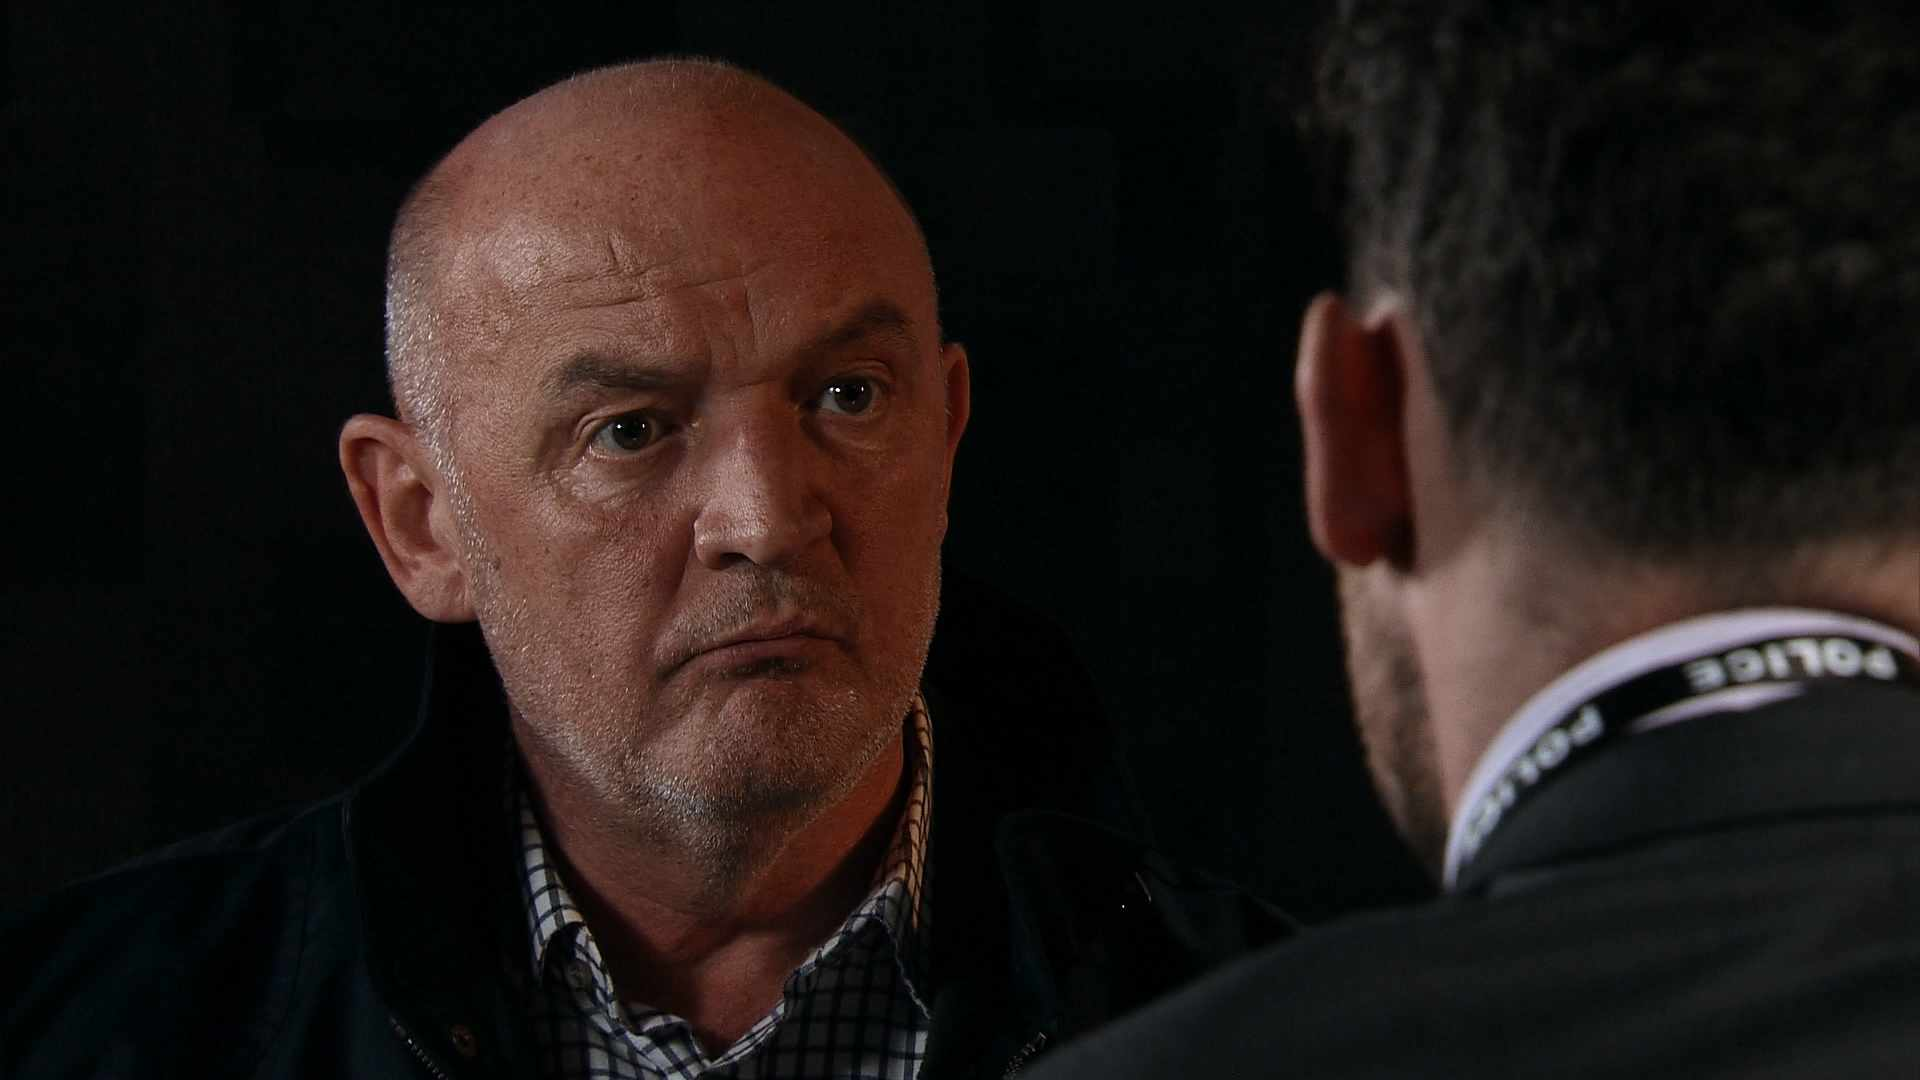 CORRIE 9356 WEDS 17TH JAN 2030 PREVIEW CLIP